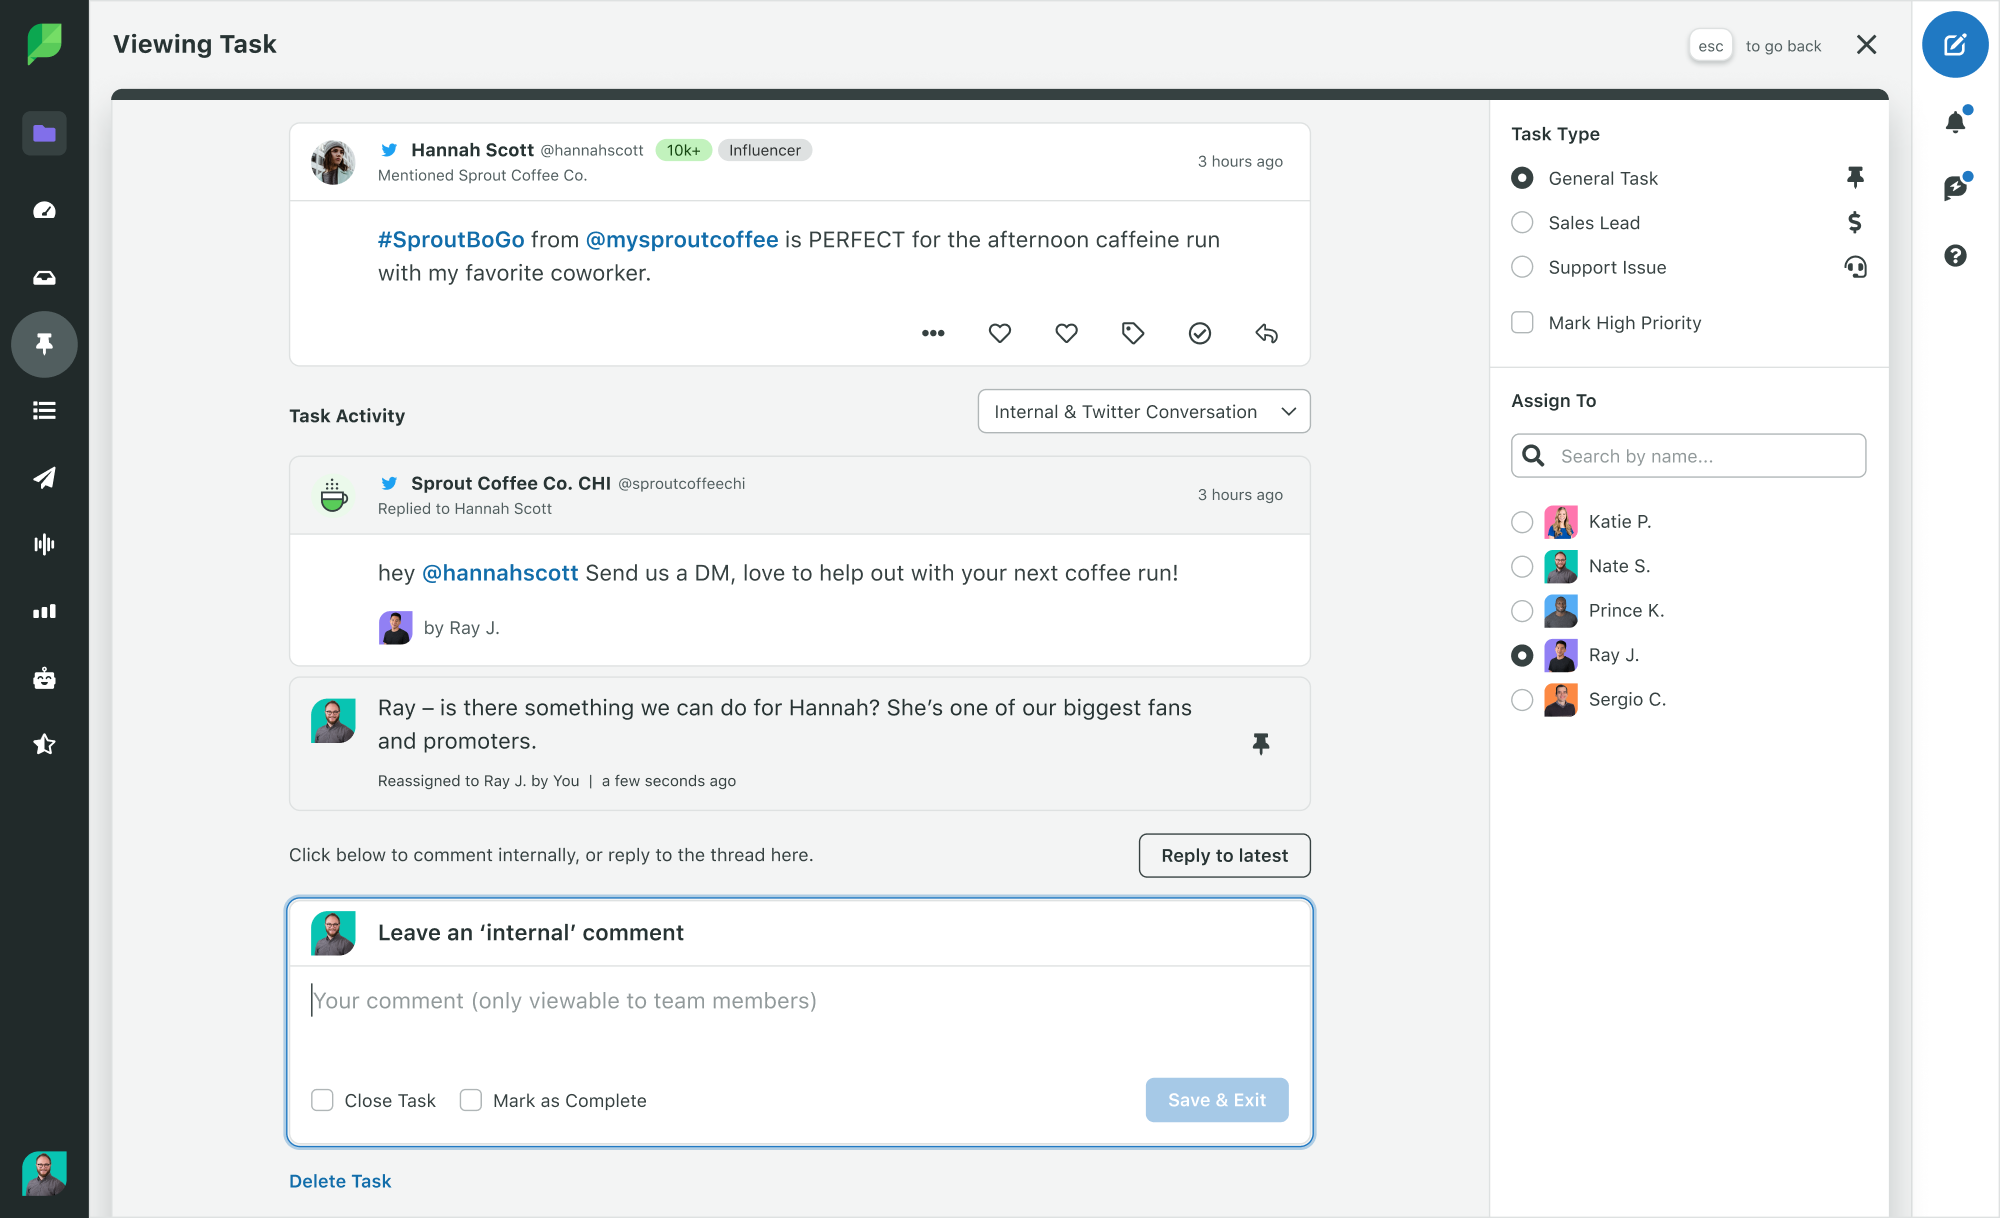 Sprout Social Product Image of Engagement Twitter Task Activity History